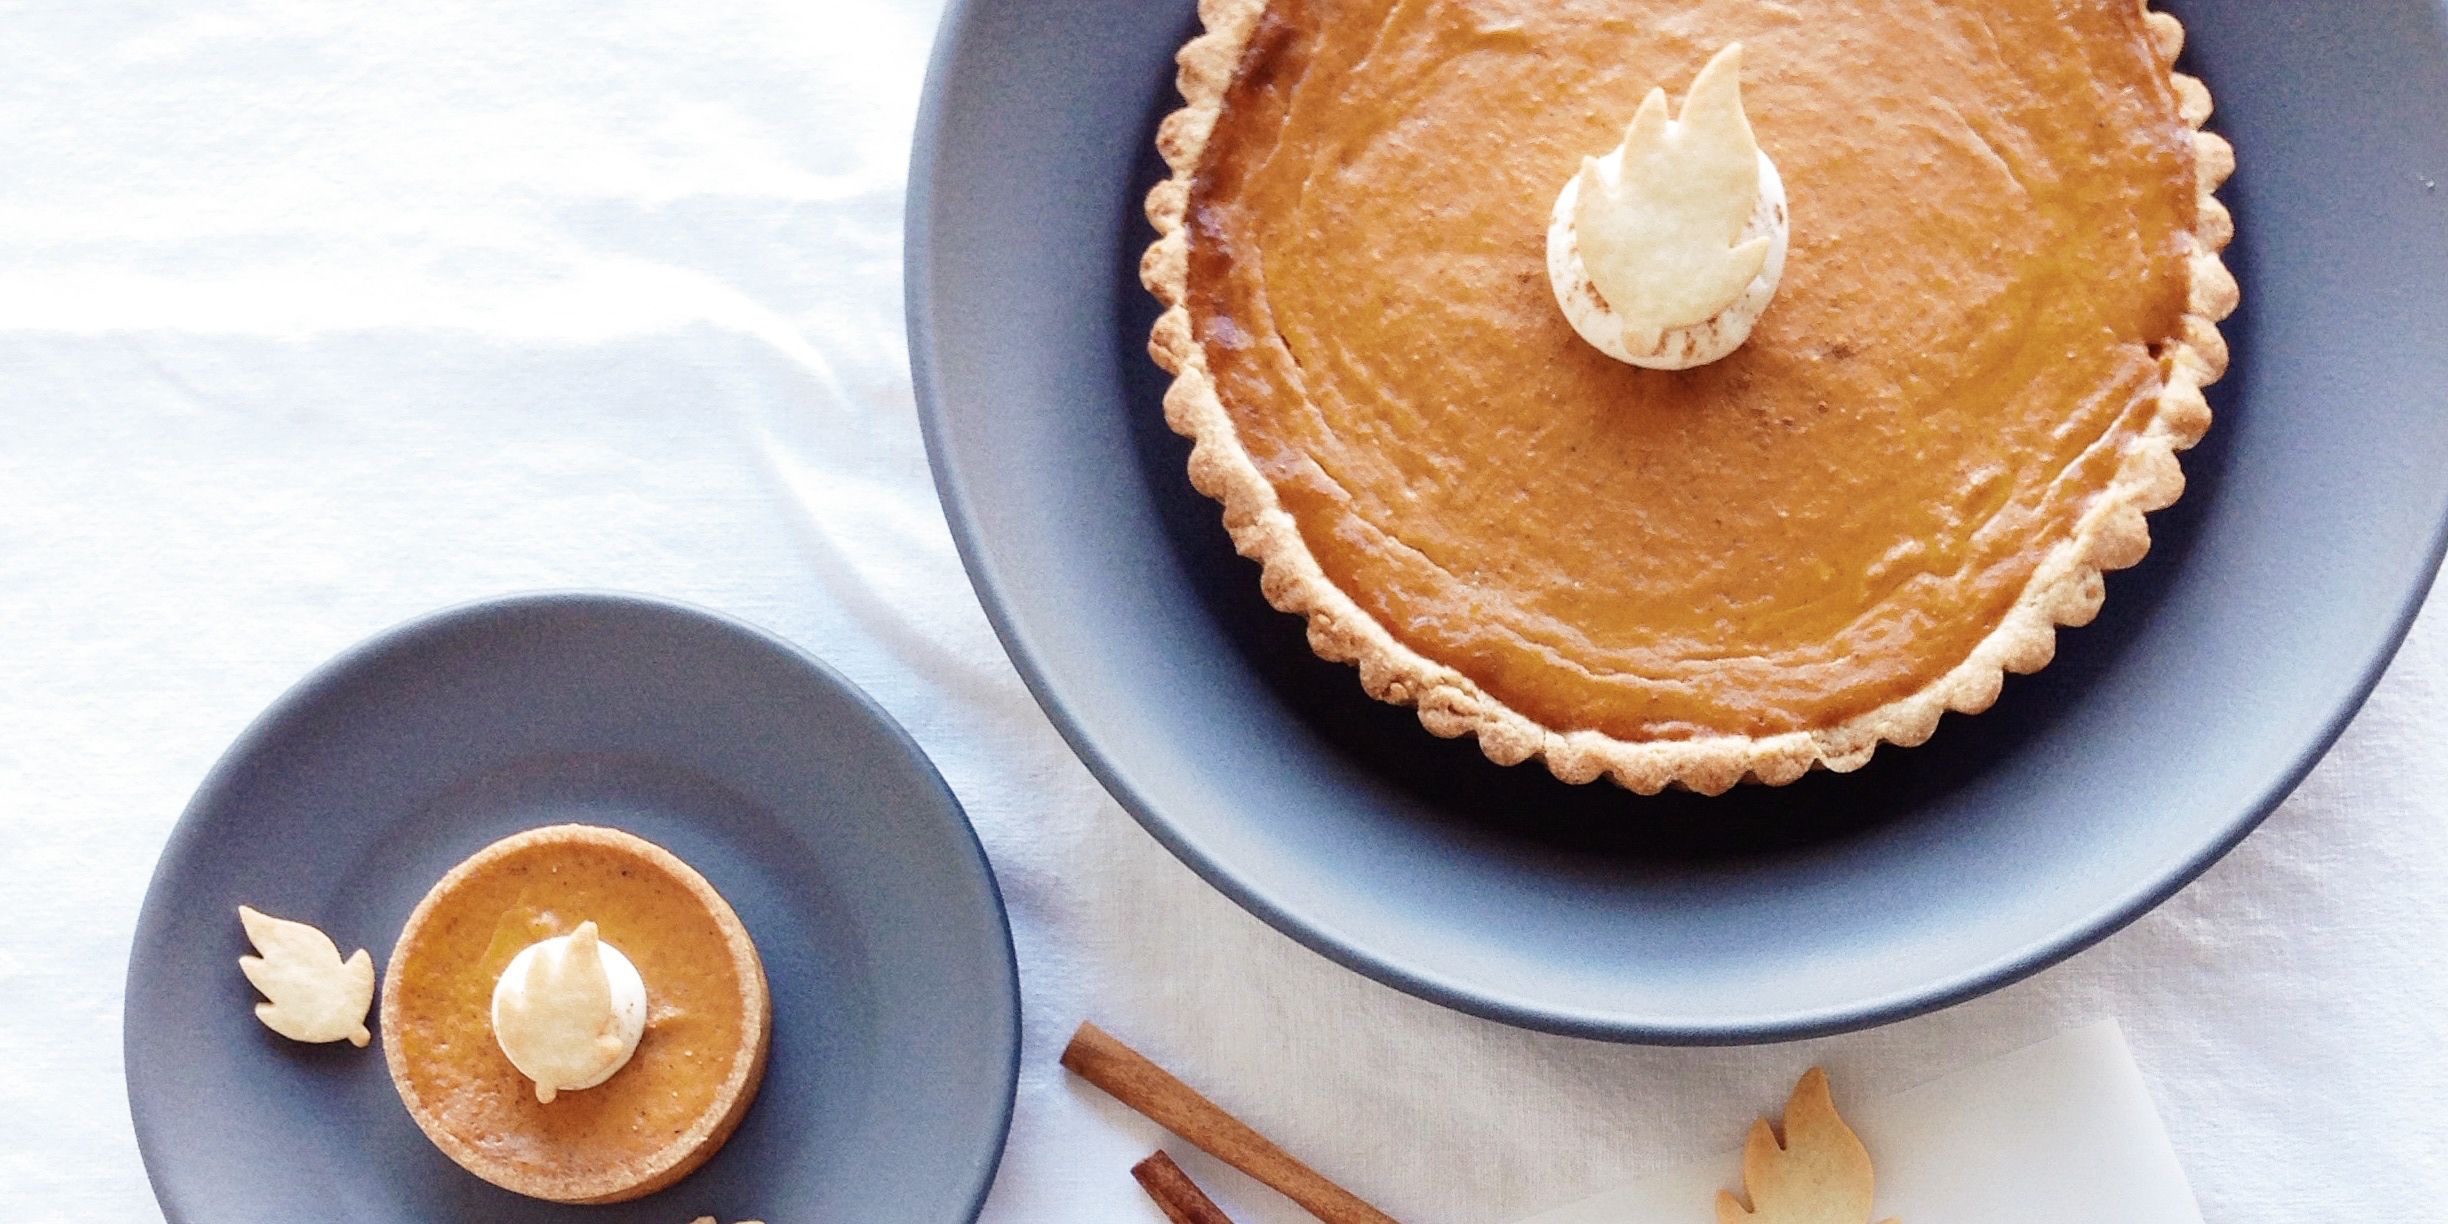 20 Thanksgiving Desserts To Make Your Holiday A Bit Sweeter